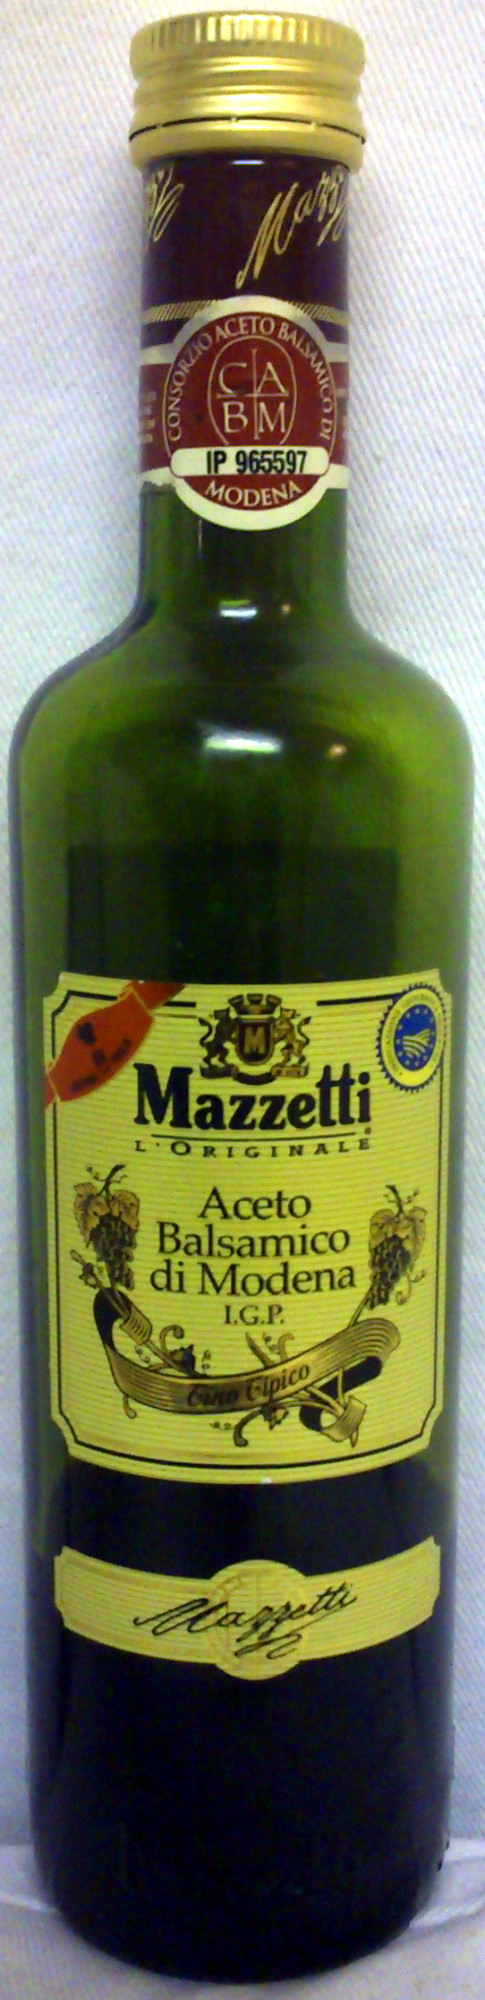 Aceto Balsamico - Product - it